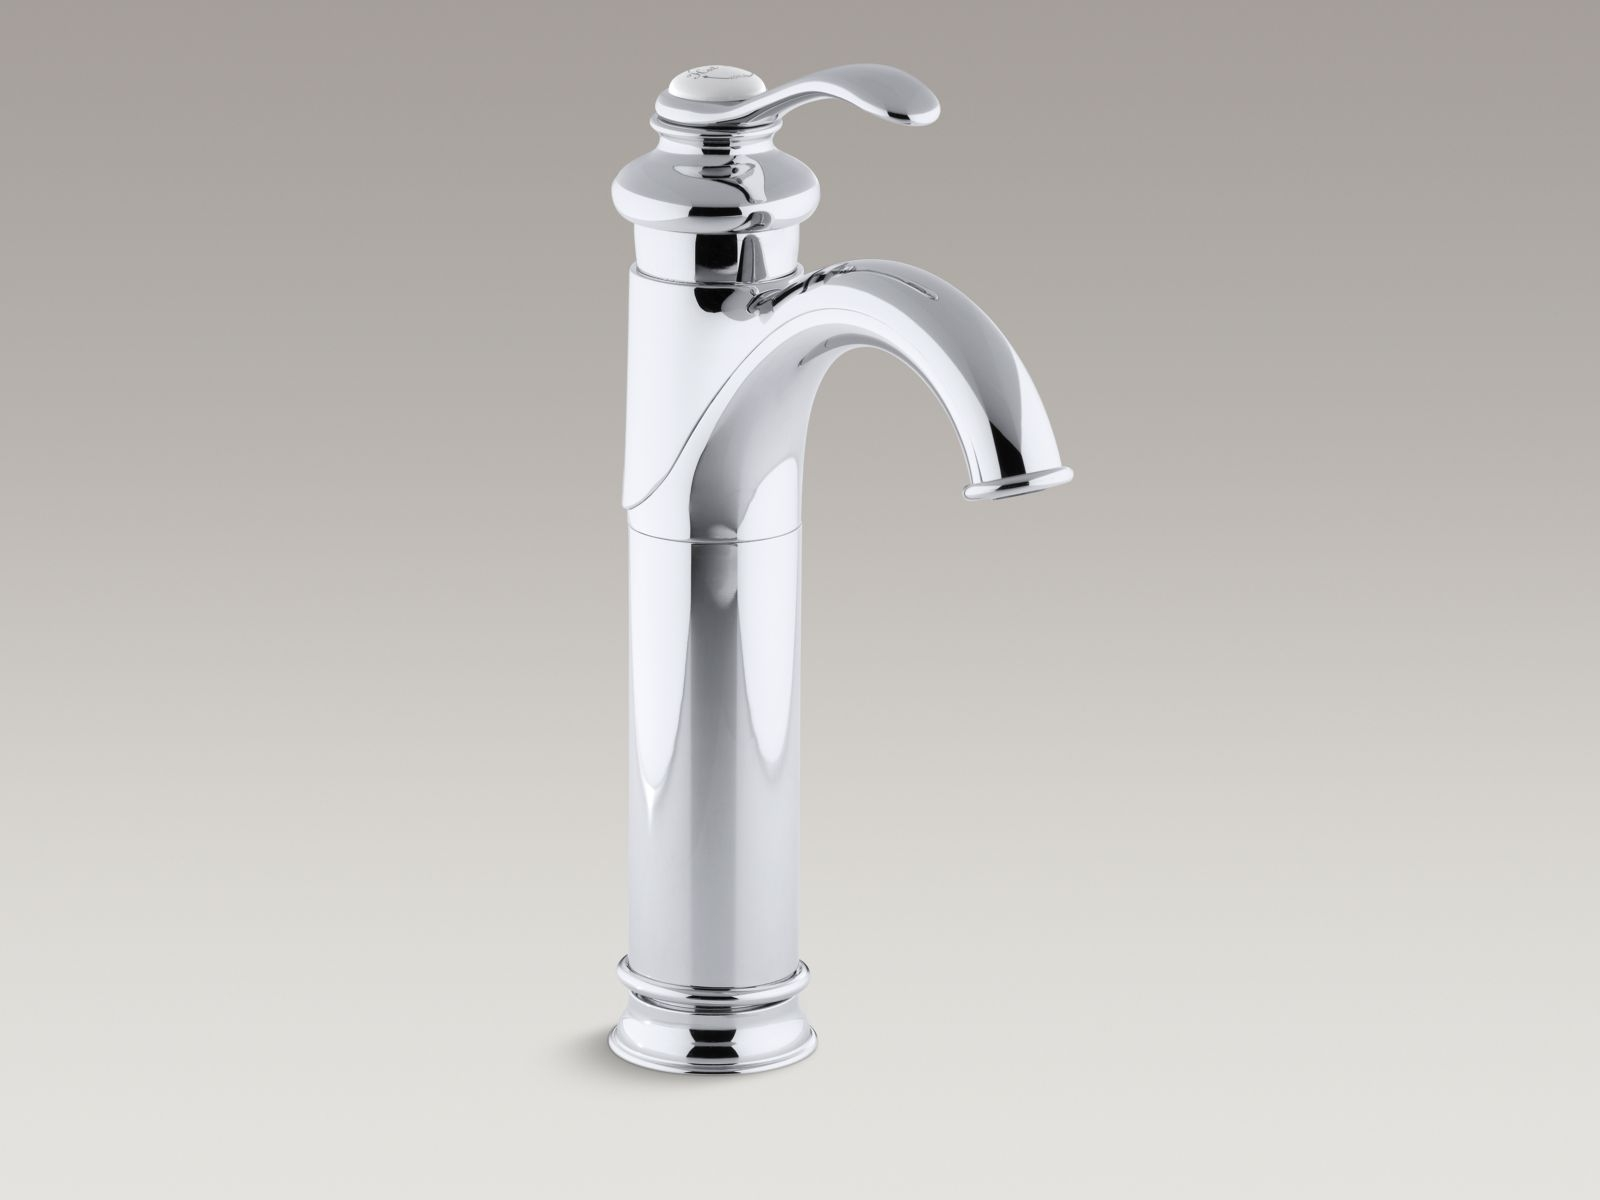 Ideas, kohler stance tall faucet kohler stance tall faucet buyplumbing category single handle bathroom faucet 1600 x 1200 1  .